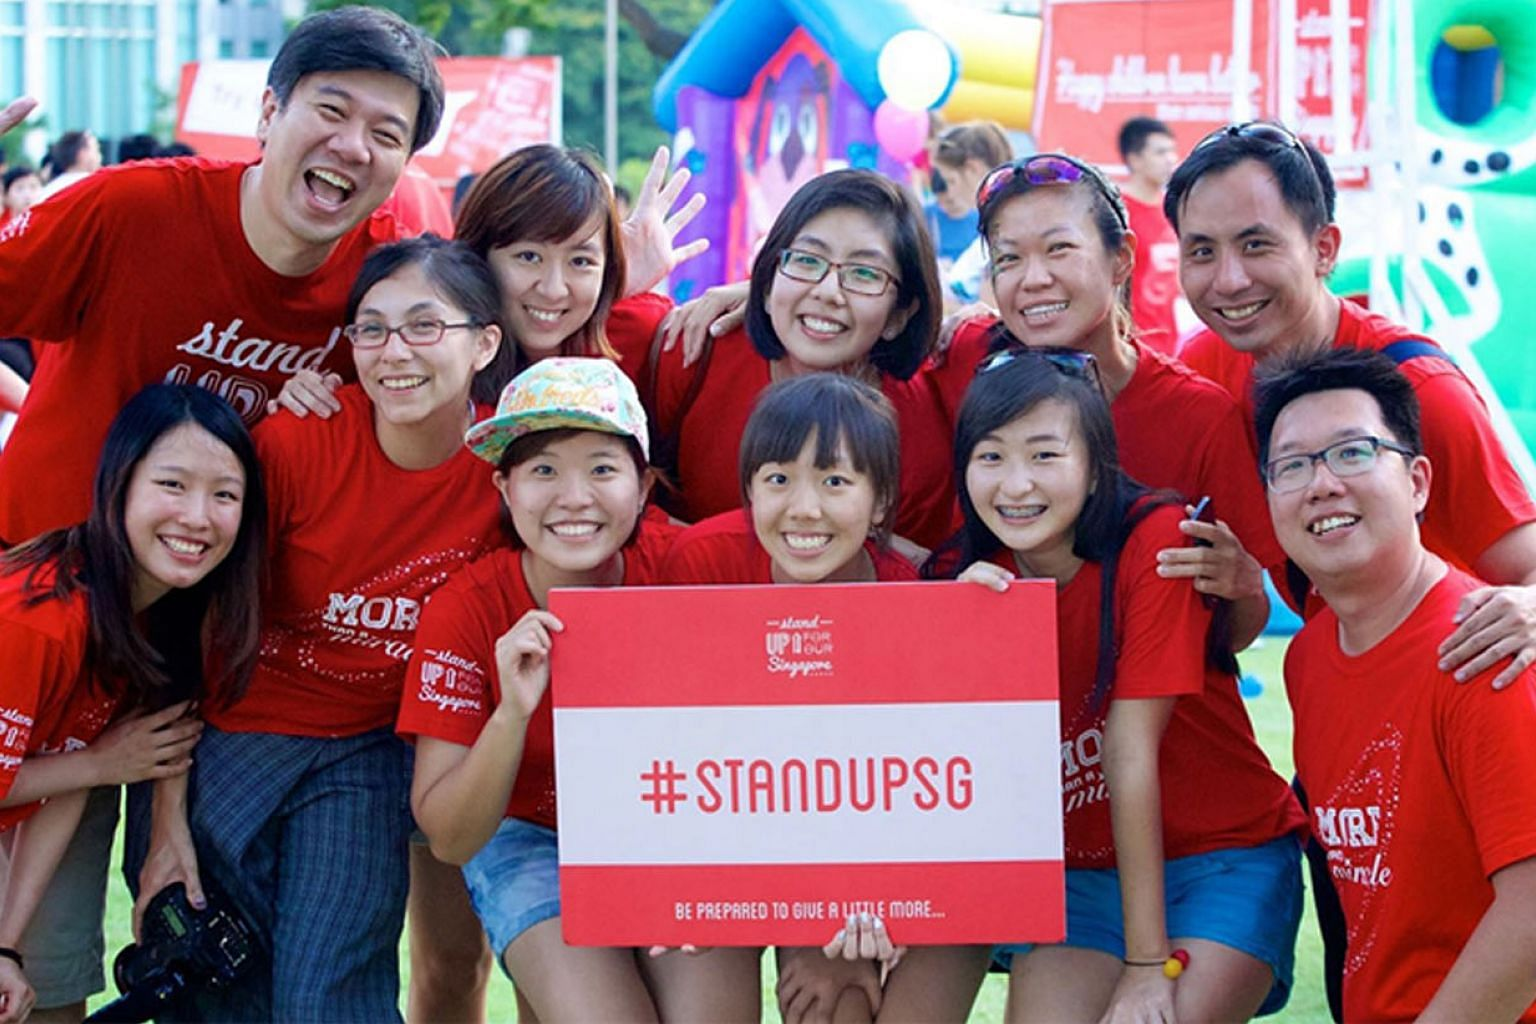 StandUpFor.SG is a group of young Singaporeans who seek, among other things, to spread kindness to others. Young people may find comfort in numbers and prefer to volunteer in a group rather than act on their own, says Singapore Kindness Movement's ge